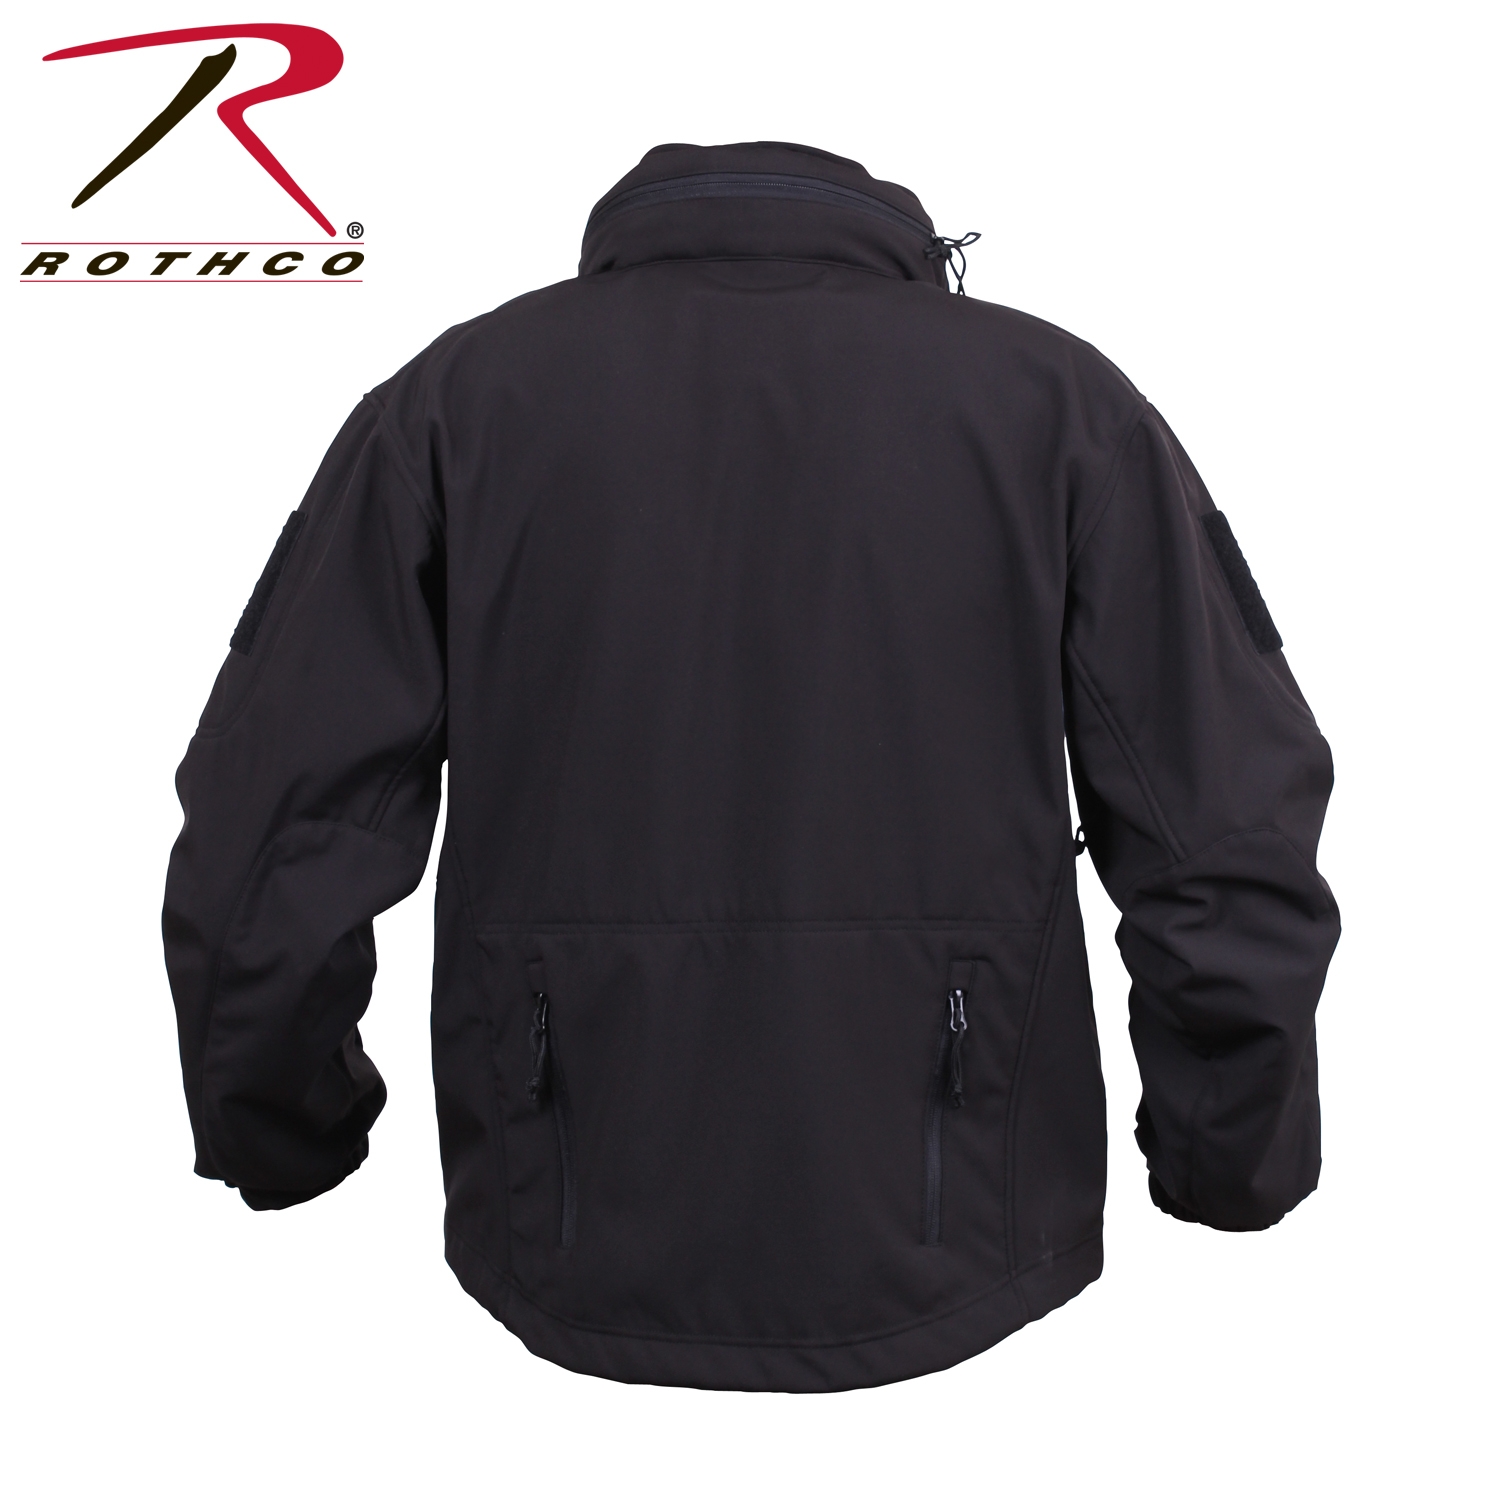 Rothco 55385 Concealed Carry Soft Shell Jacket